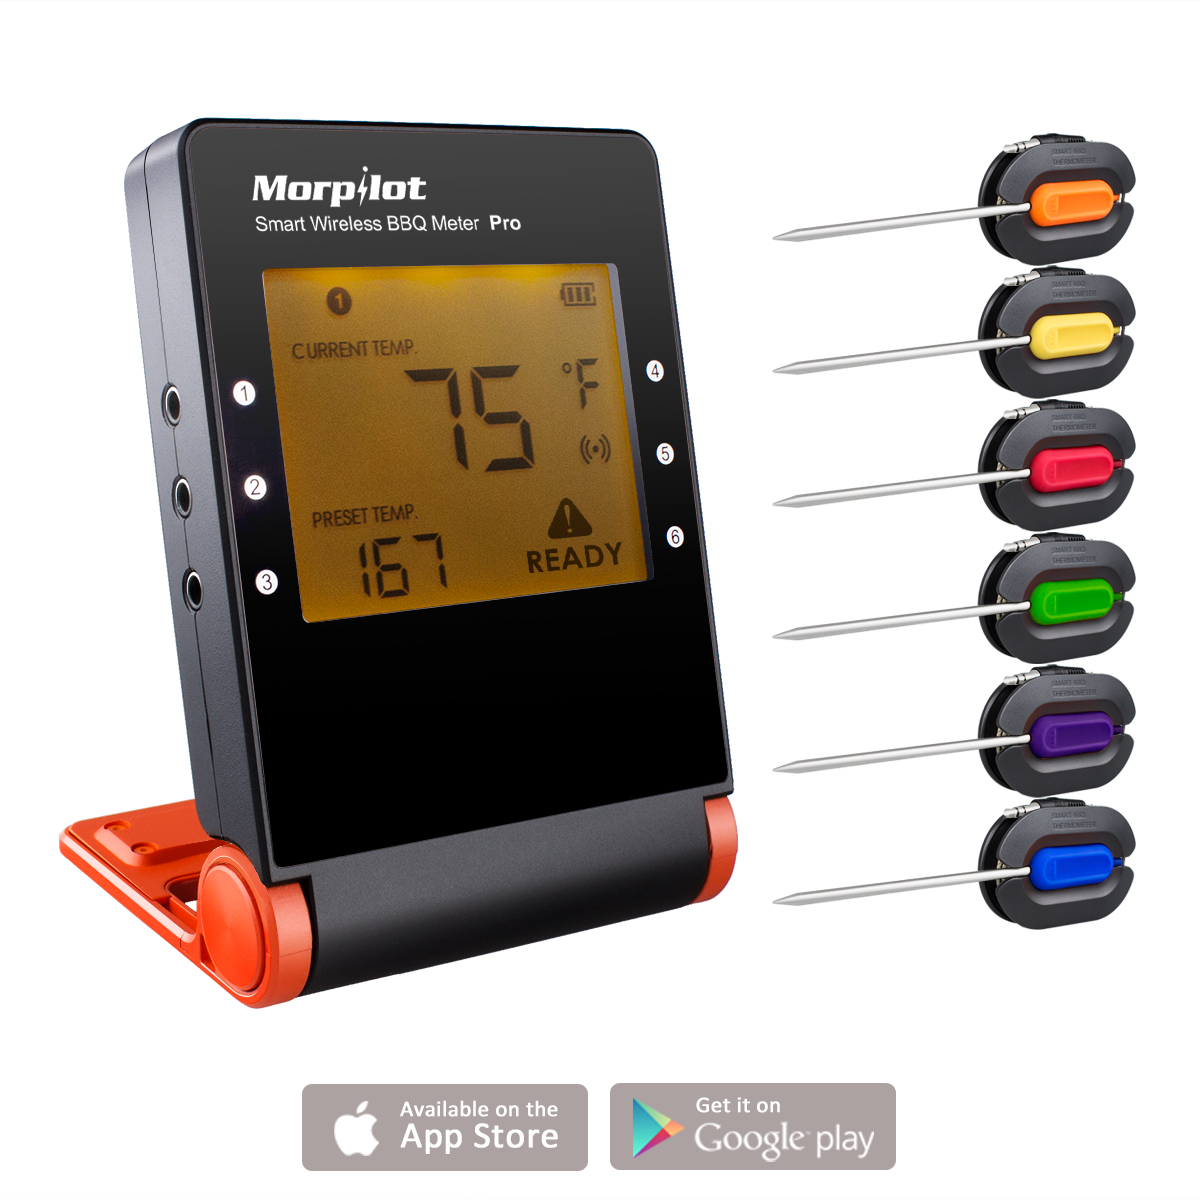 Morpilot BBQ Thermometer Smart Bluetooth Wireless Remote Digital Kitchen Cooking Food Meat Thermometer 6 channel 6 probes